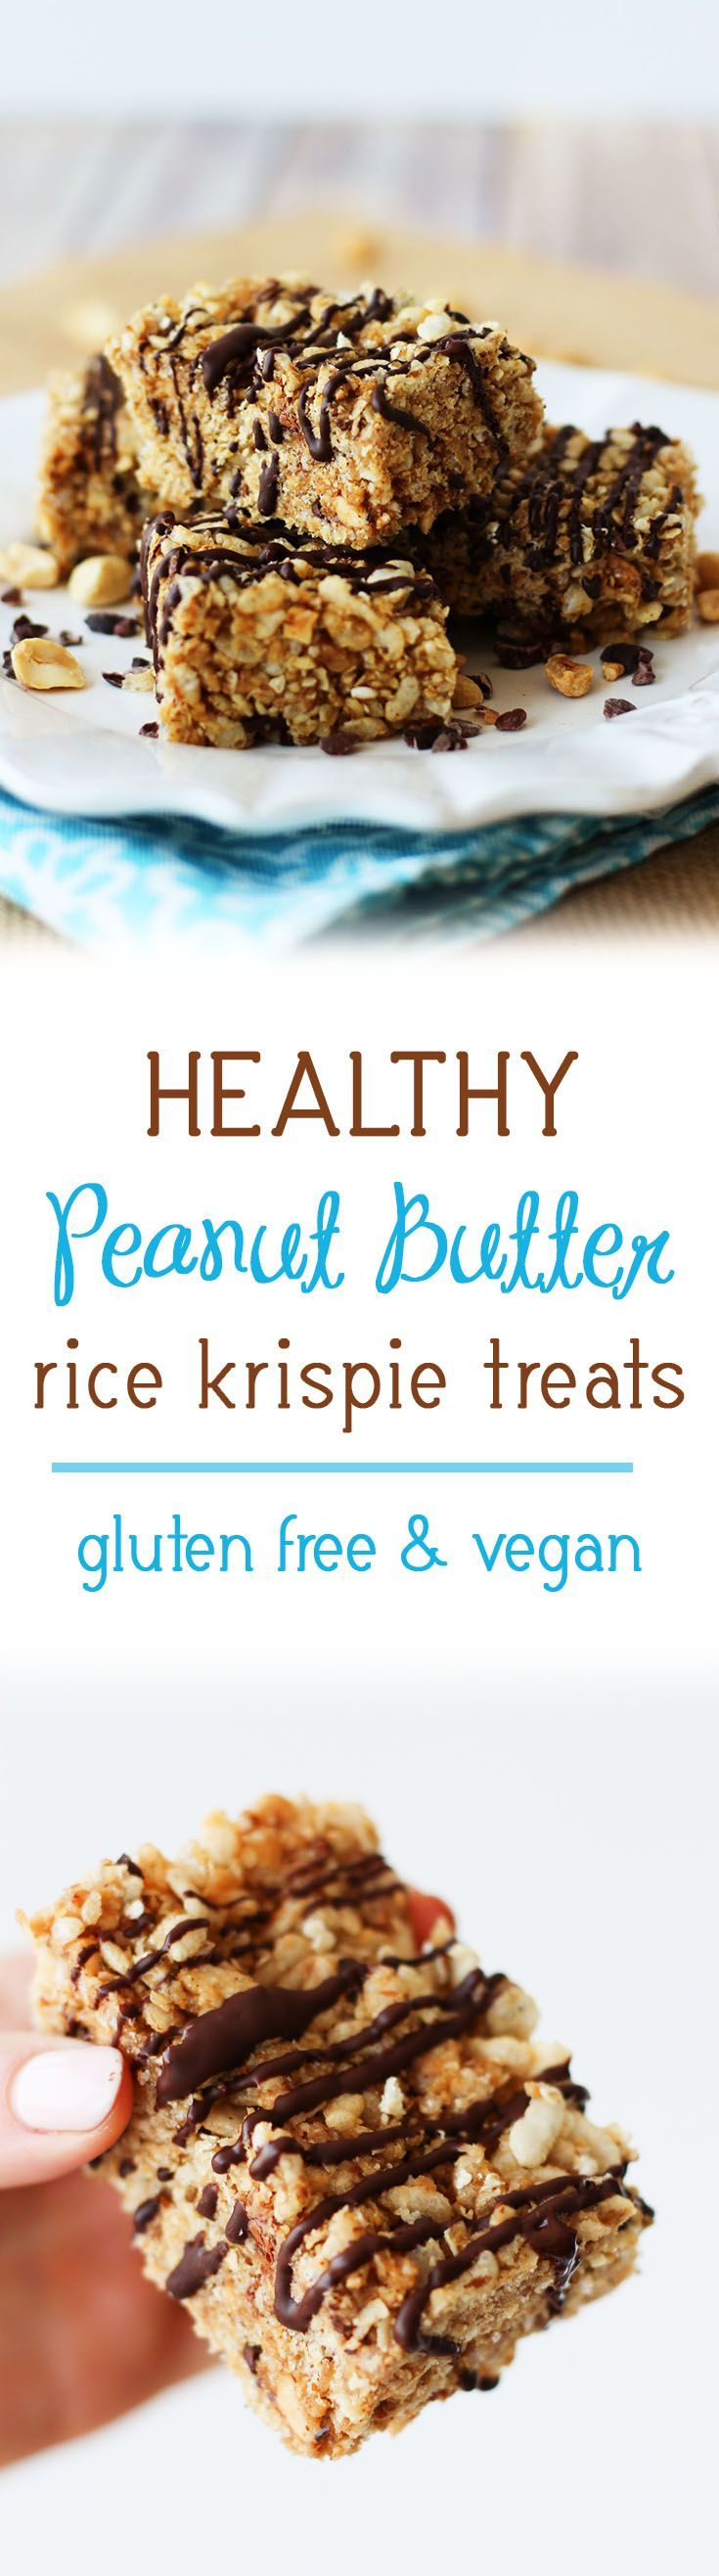 These healthy peanut butter rice krispie treats are perfect after work or school snacks and were created in partnership with Peanut Bureau . They're gluten free, vegan, and totally marshmallow-free, yet they're super fun for adults and kids, alike!